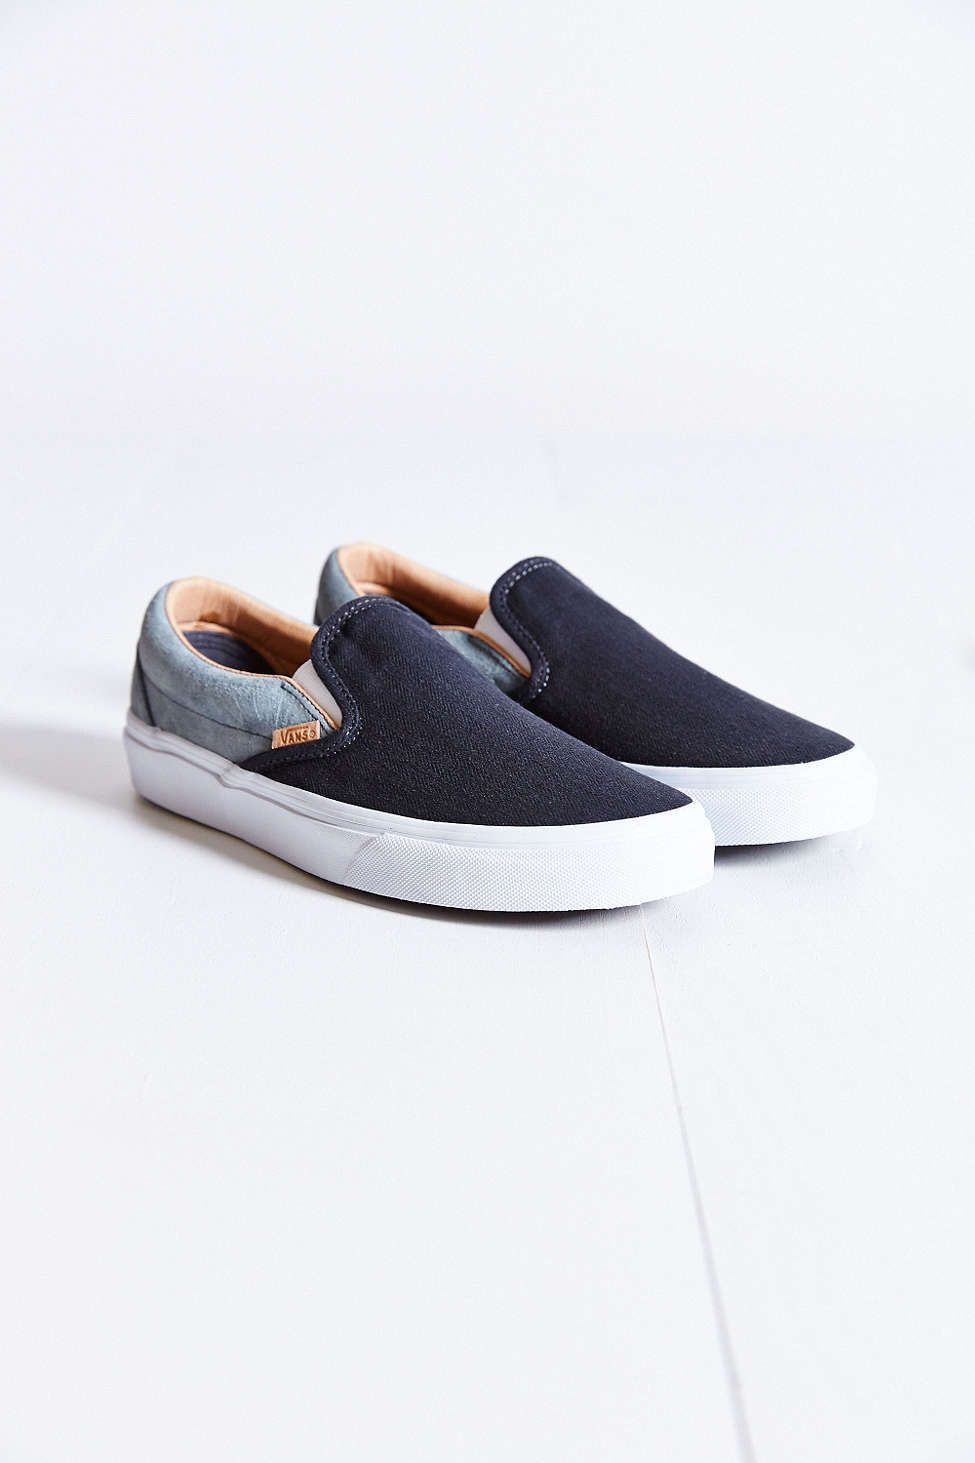 Vans Classic Knit Suede Slip On Women's Sneaker